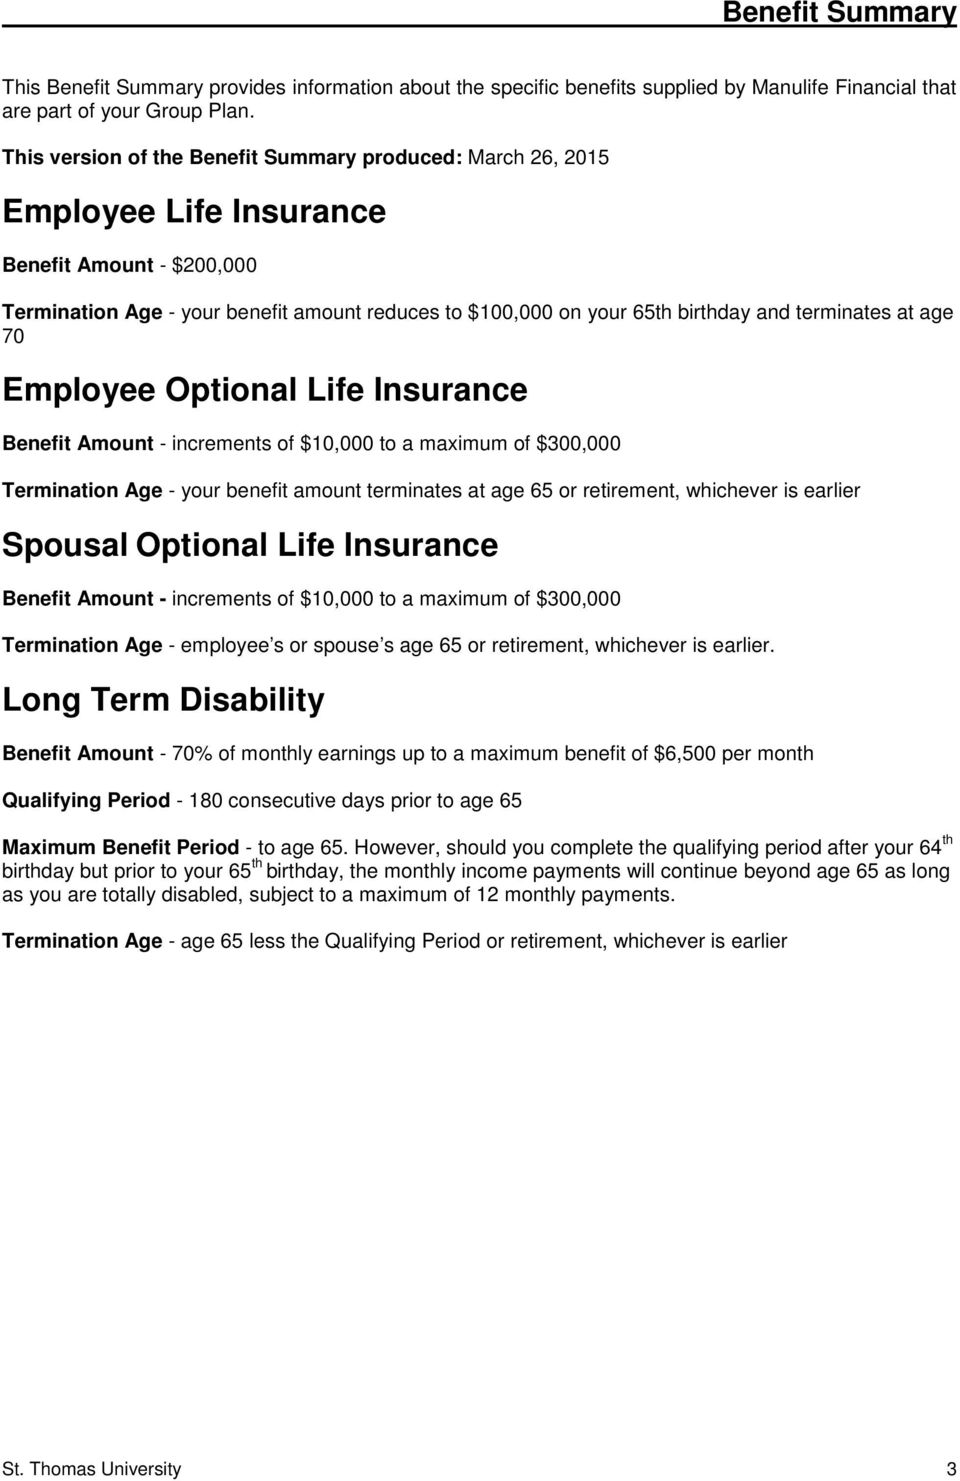 terminates at age 70 Employee Optional Life Insurance Benefit Amount - increments of $10,000 to a maximum of $300,000 Termination Age - your benefit amount terminates at age 65 or retirement,